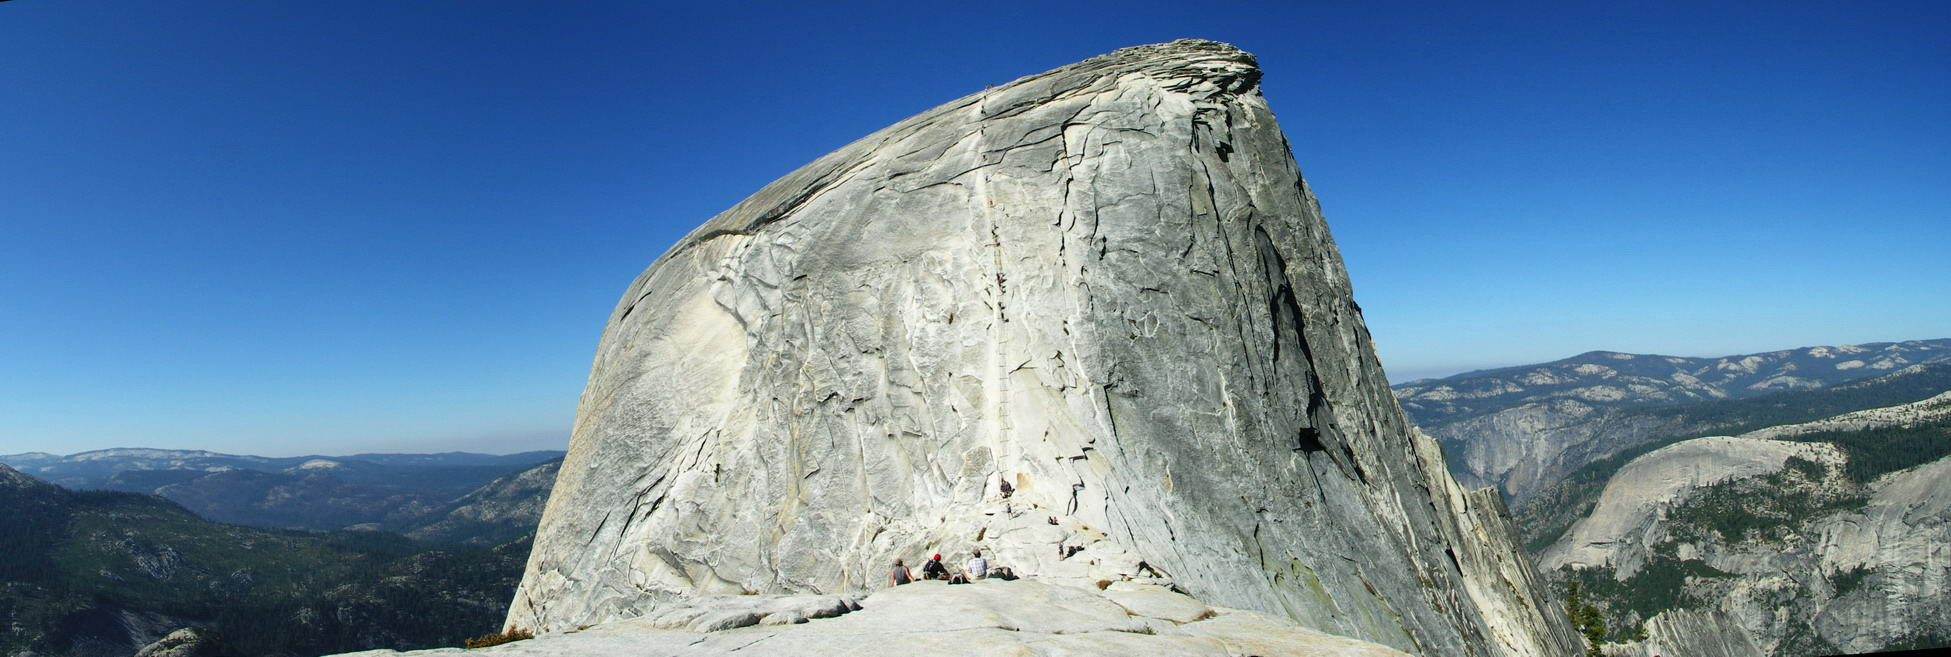 HalfDome_Cables_Pano_resize